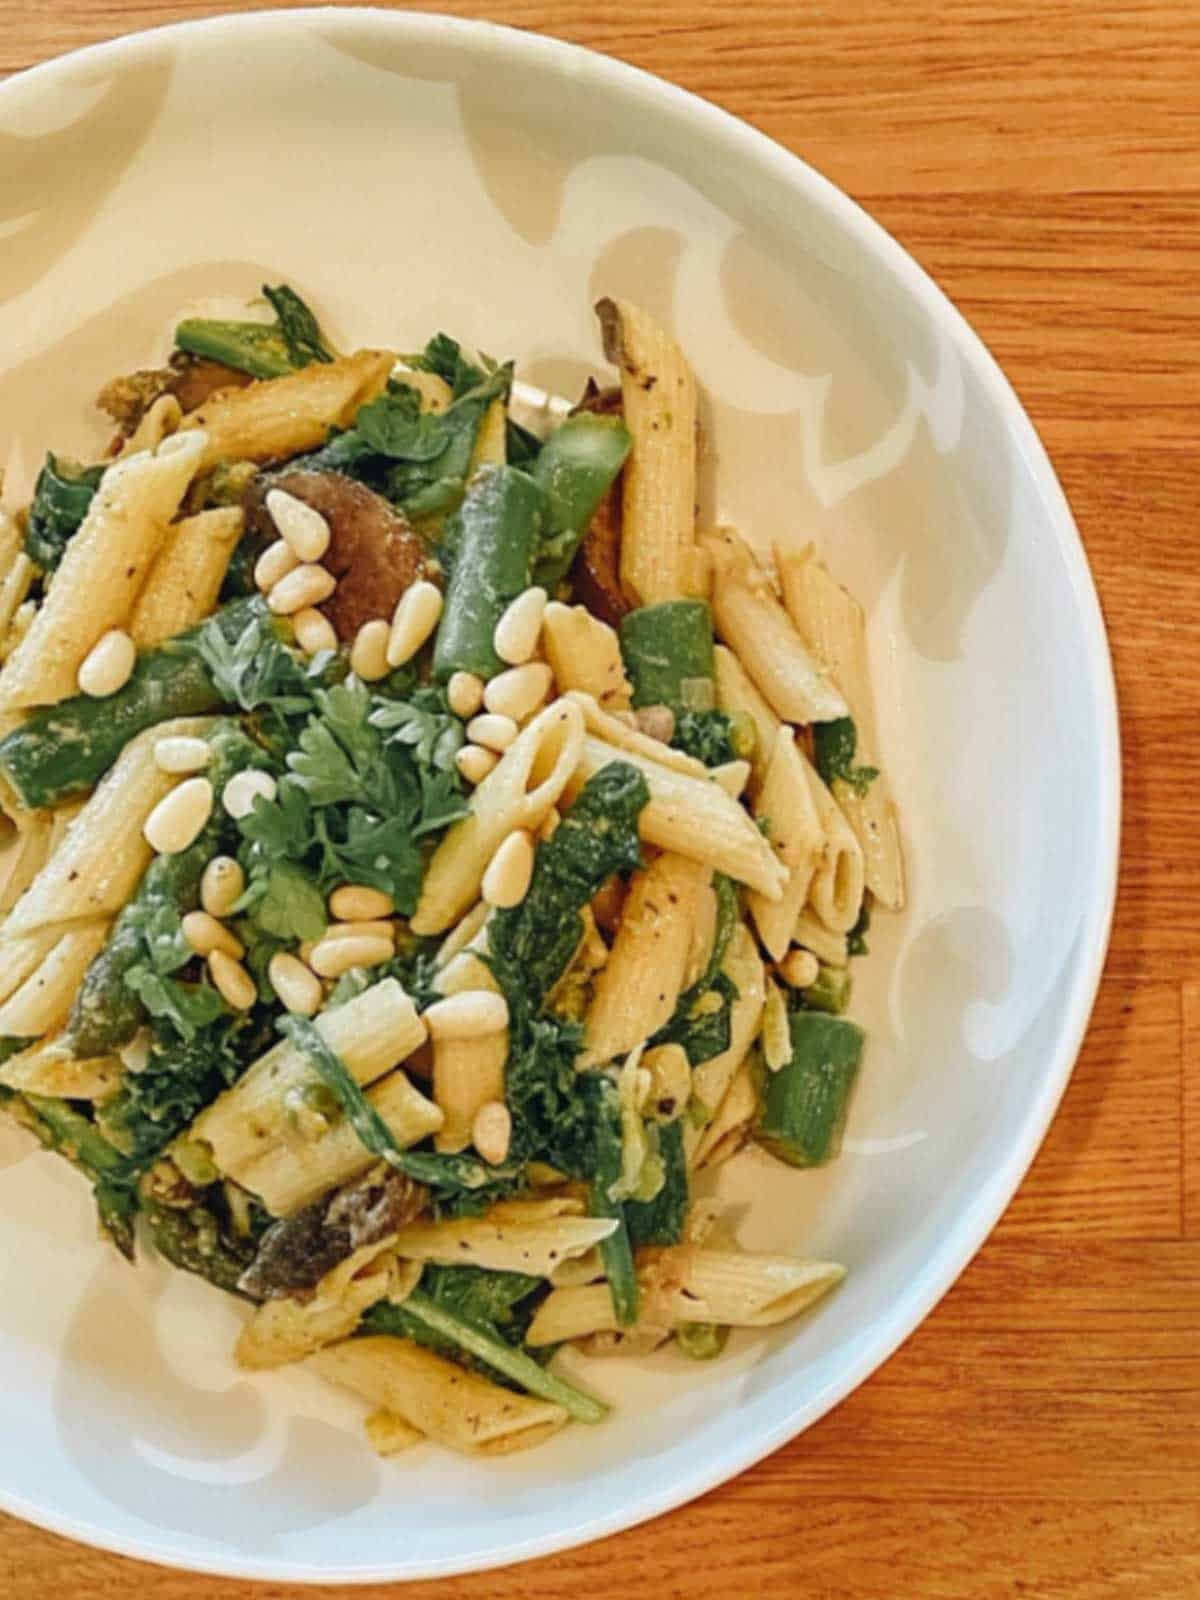 Overhead of pasta bowl with spinach, pinenuts and vegetables.